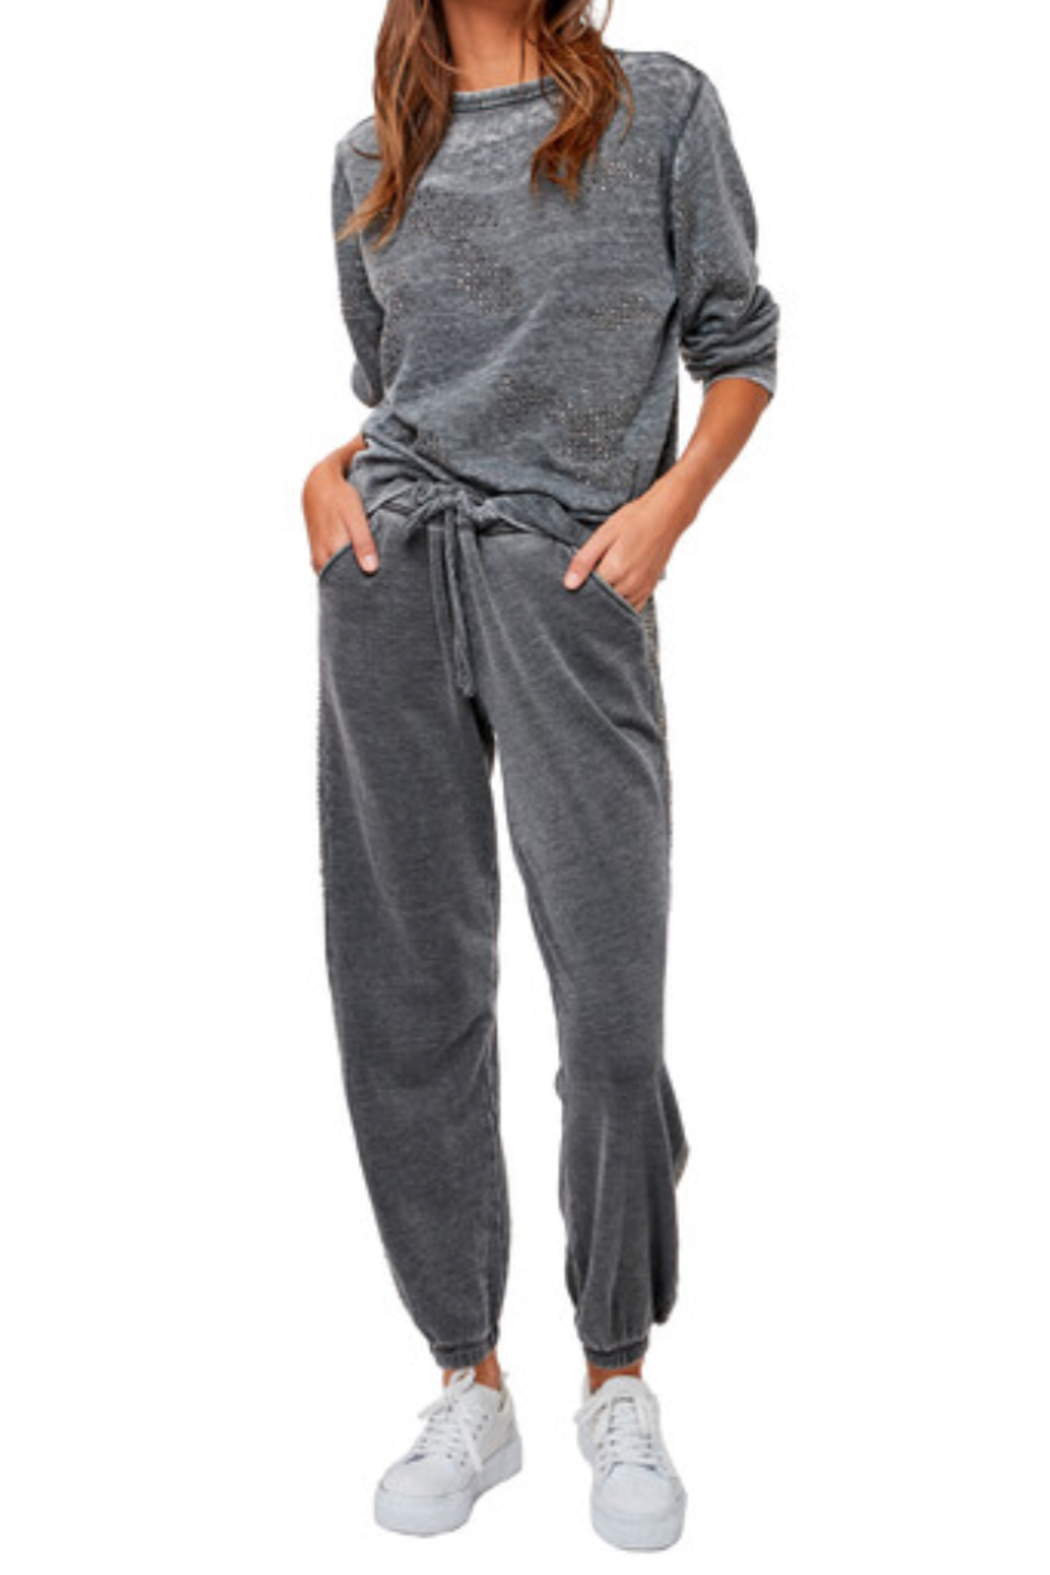 Astars Cozy burn out french terry joggers with gunmetal studs on the side seams - Main Image